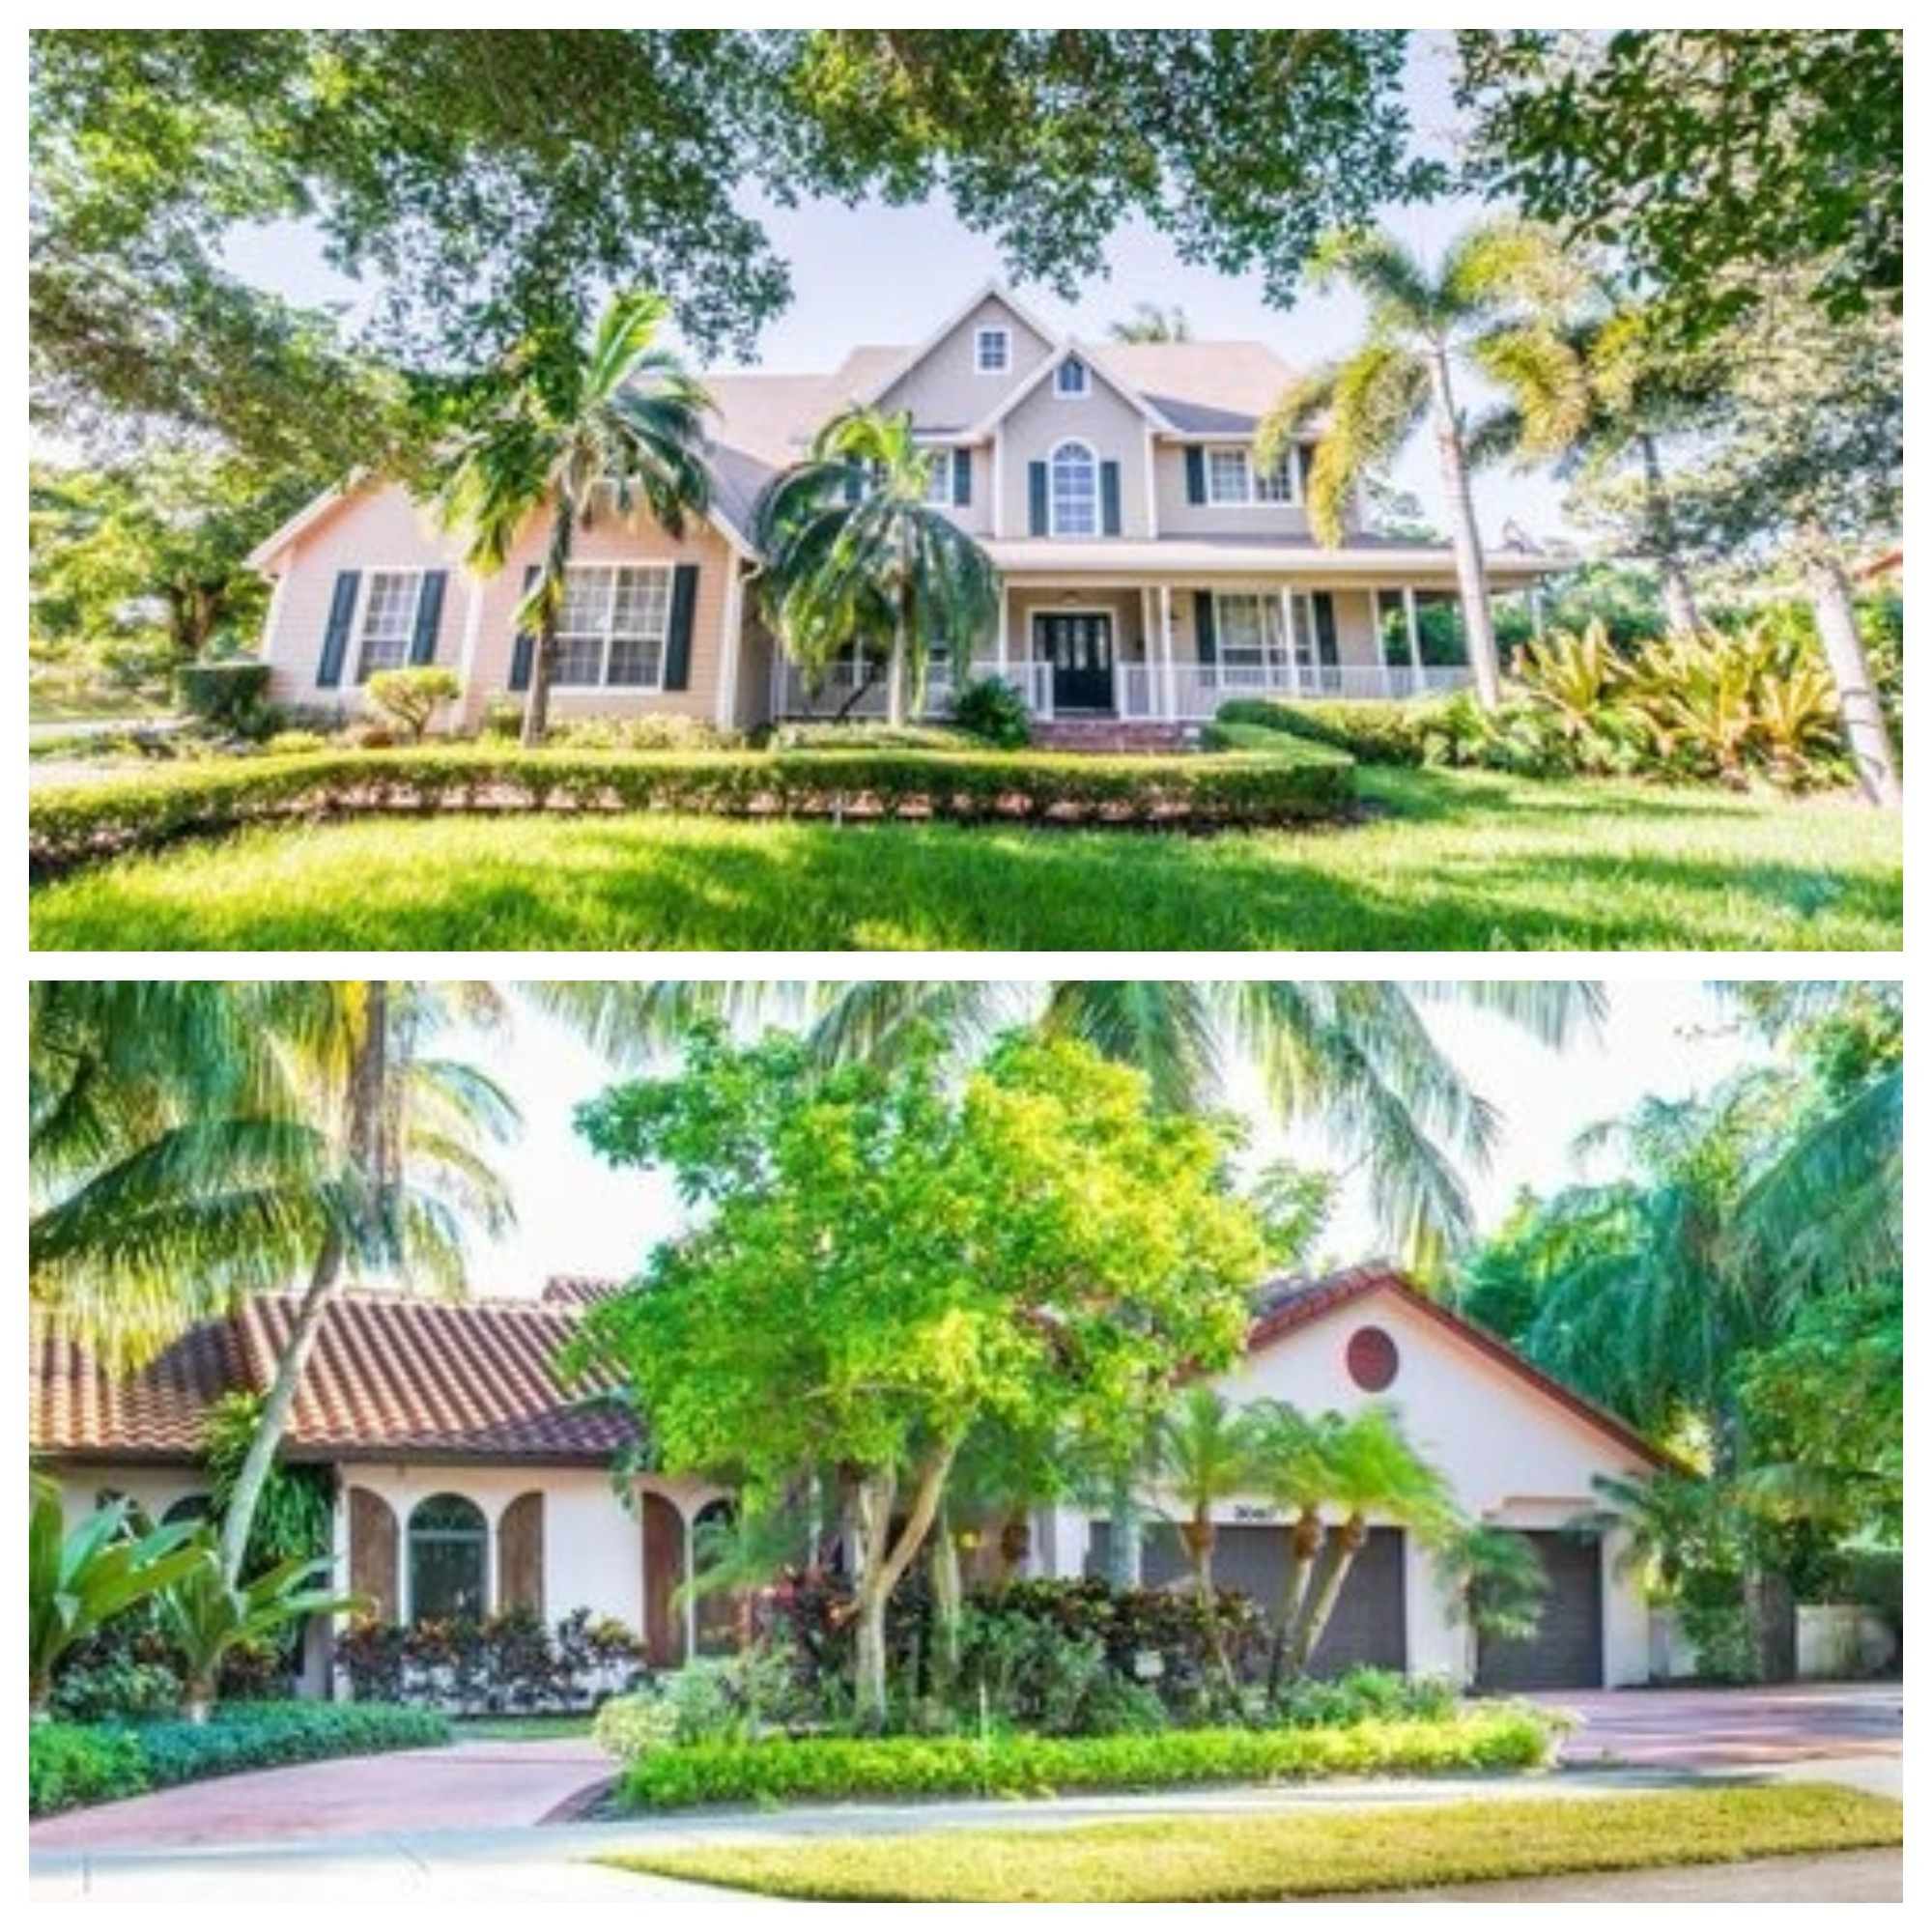 Open Houses in Delray Beach on Sunday, April 15th